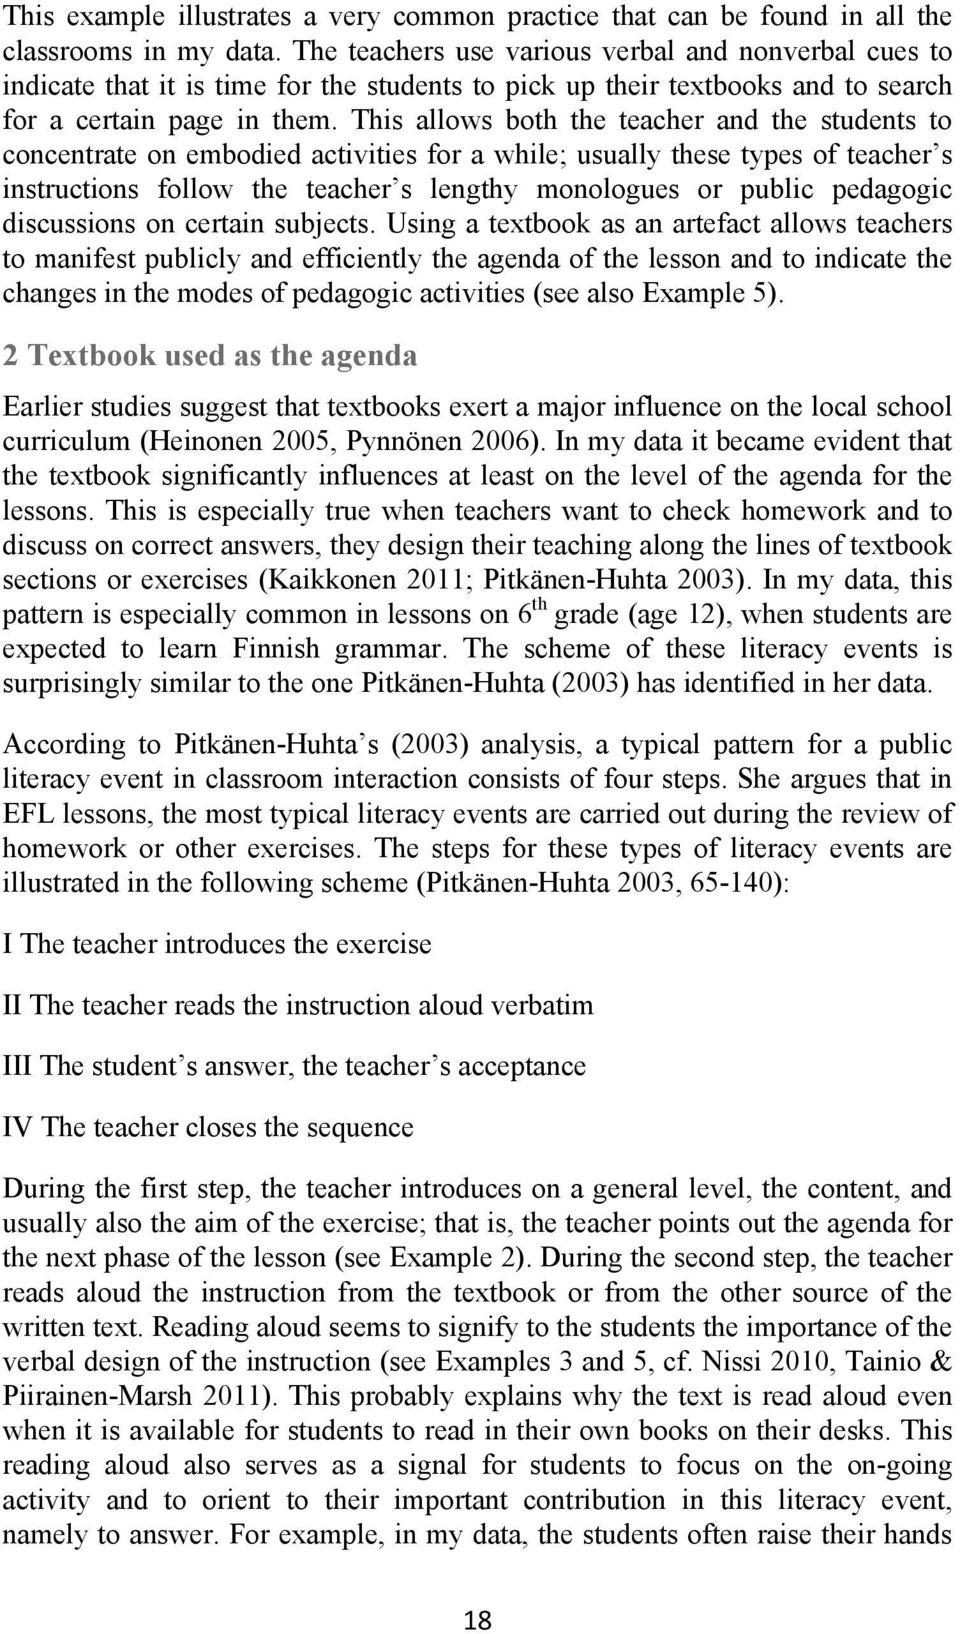 This allows both the teacher and the students to concentrate on embodied activities for a while; usually these types of teacher s instructions follow the teacher s lengthy monologues or public